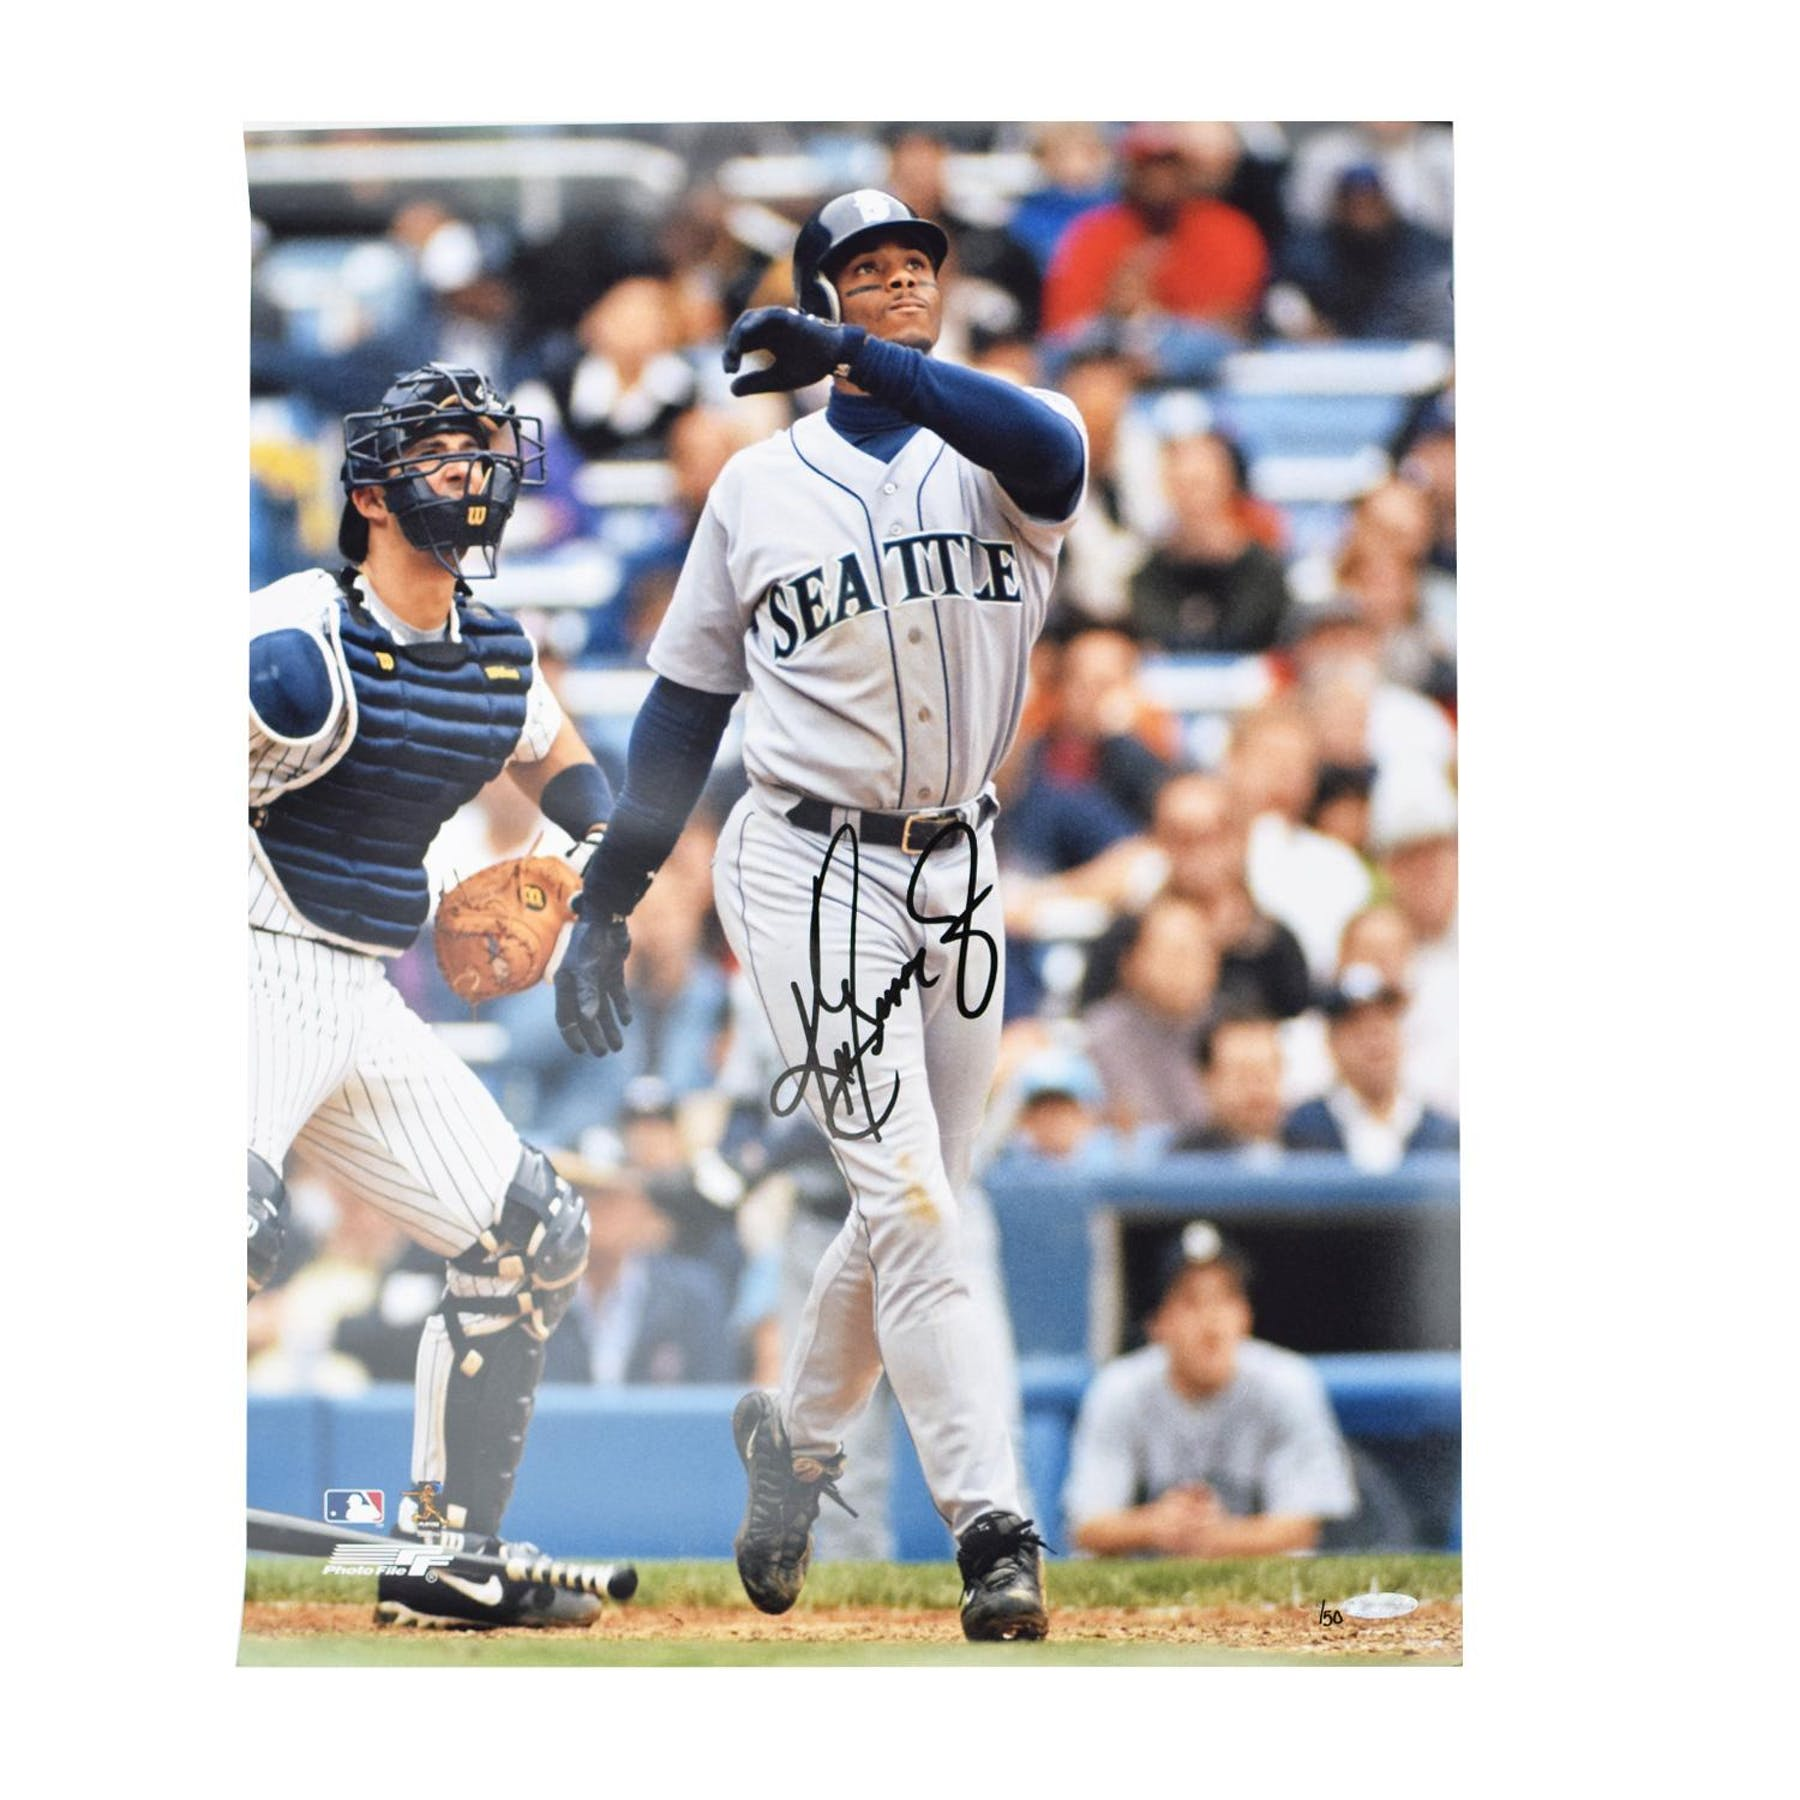 sneakers for cheap c4a84 1c8eb Ken Griffey Jr Seatlle Mariners UDA Autographed Stadium 16 x 20 Photo LE /50